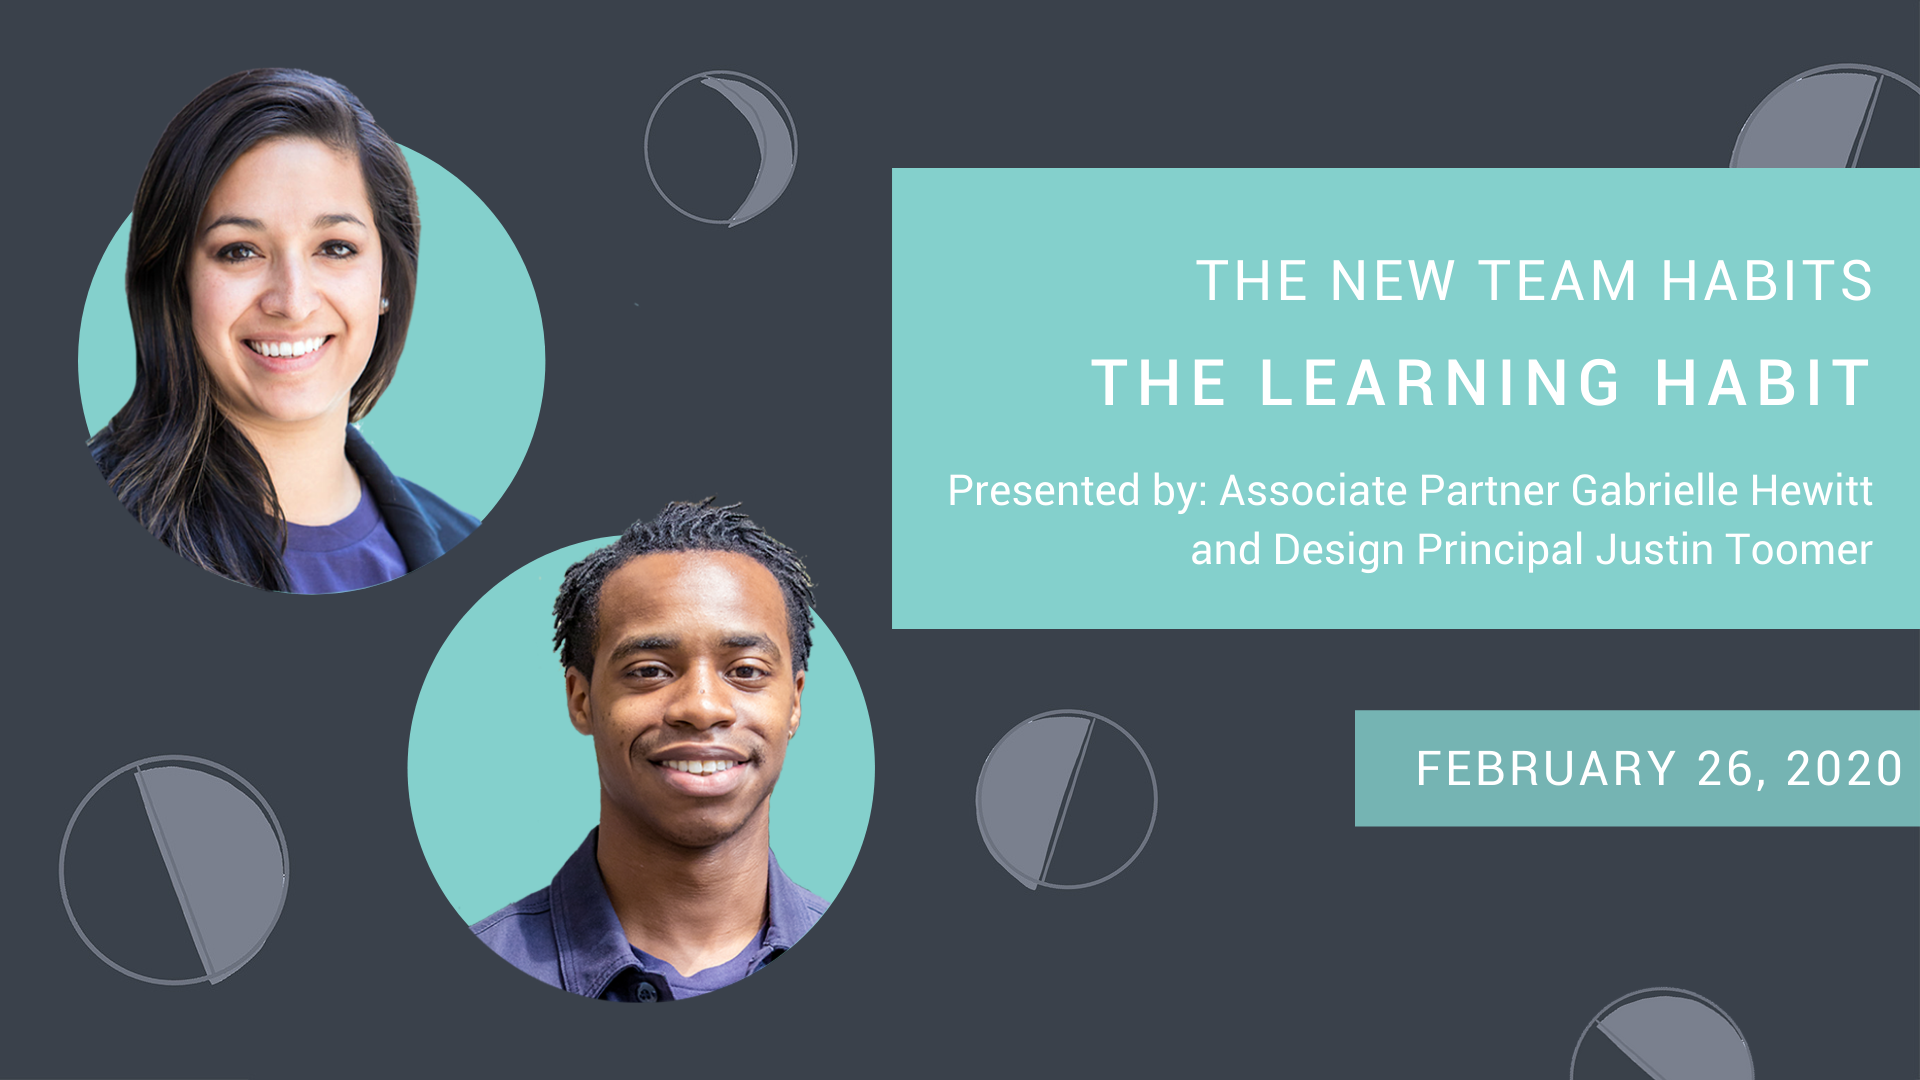 Webinar - The New Team Habits The Learning Habit - February 26 2020